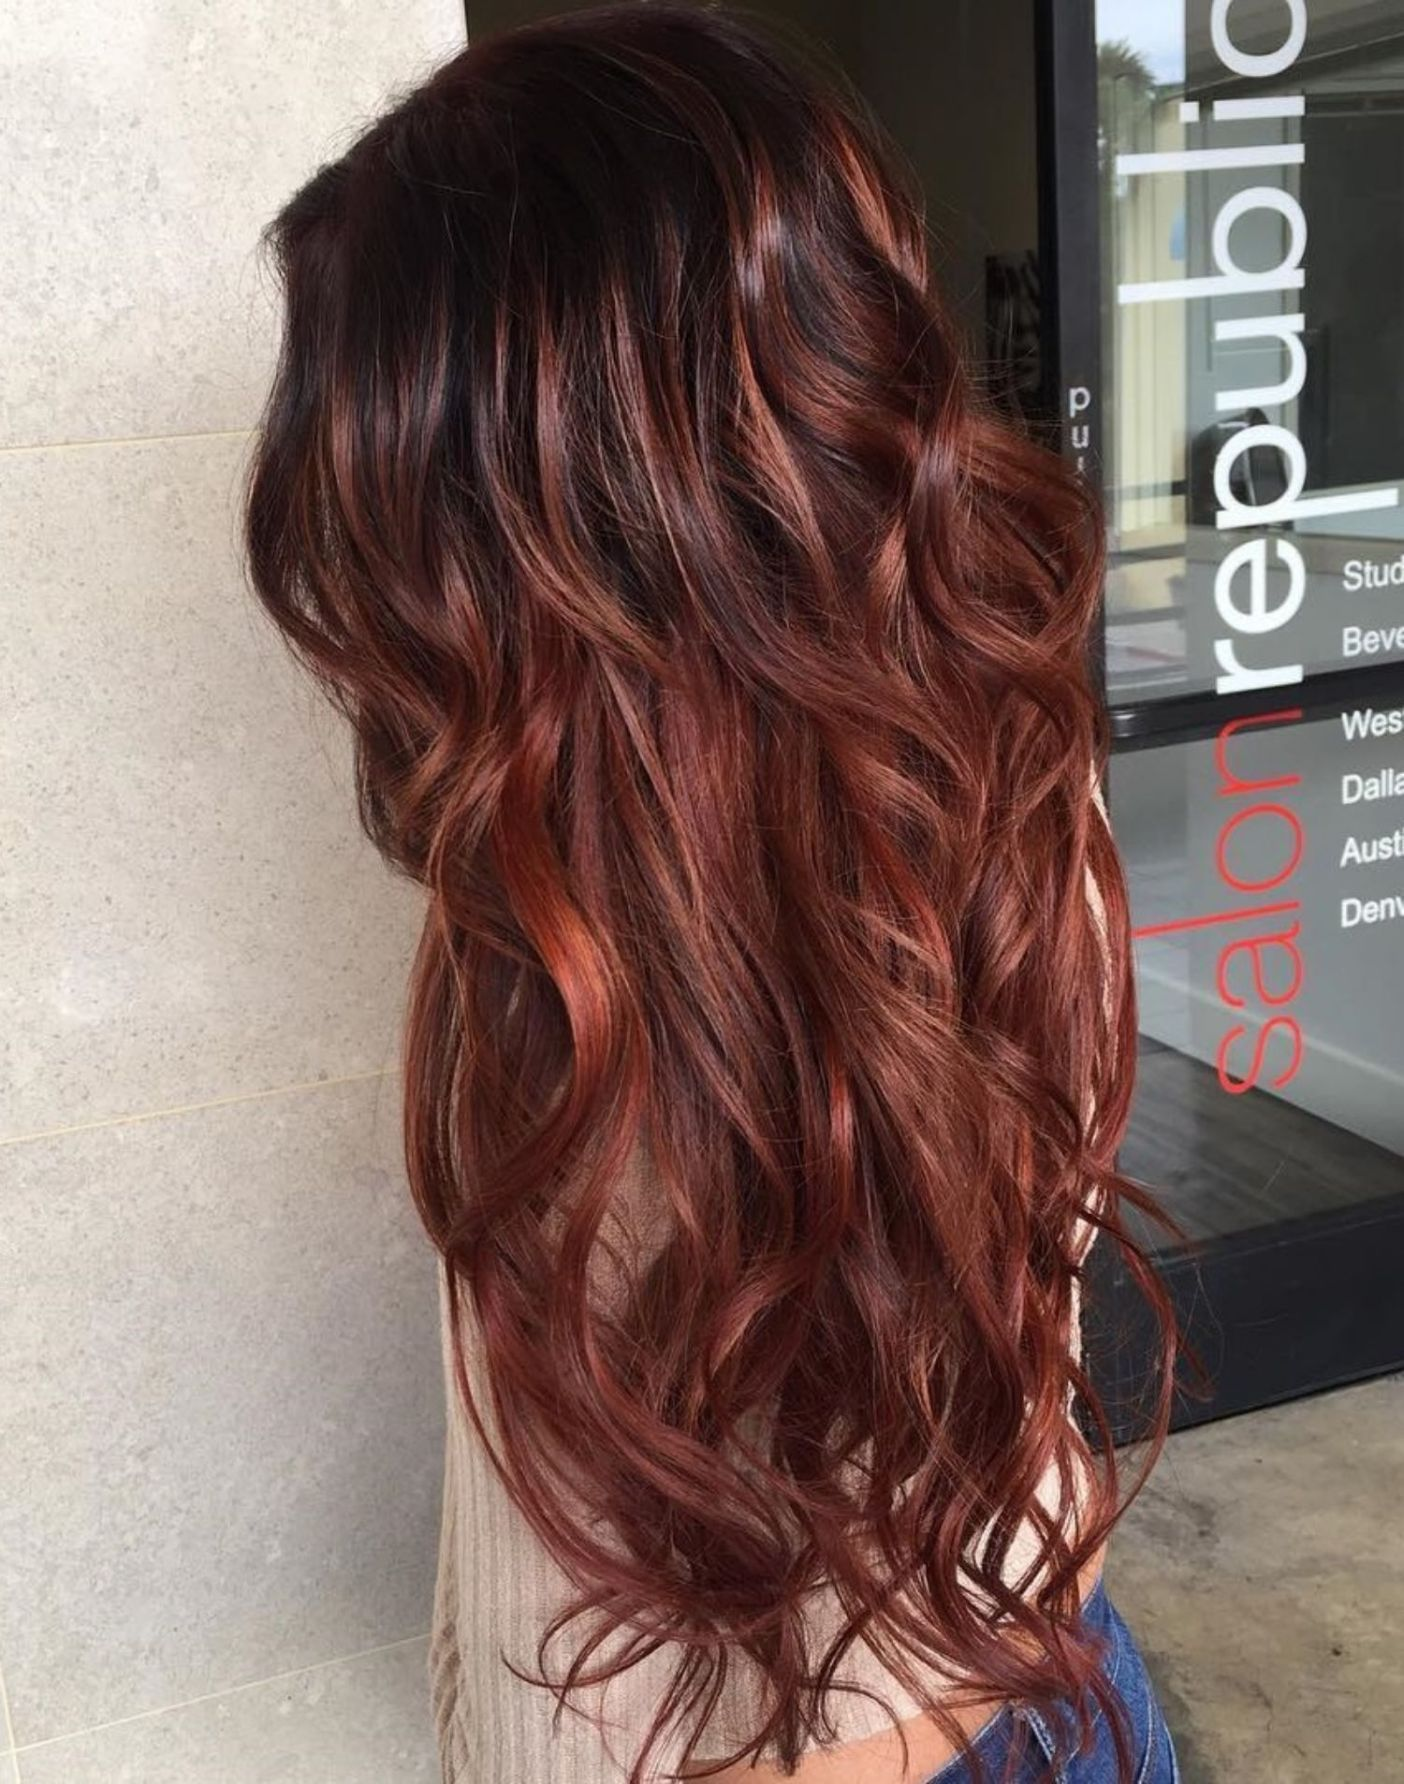 60 Auburn Hair Colors To Emphasize Your Individuality Hair Color Auburn Auburn Red Hair Curls For Long Hair